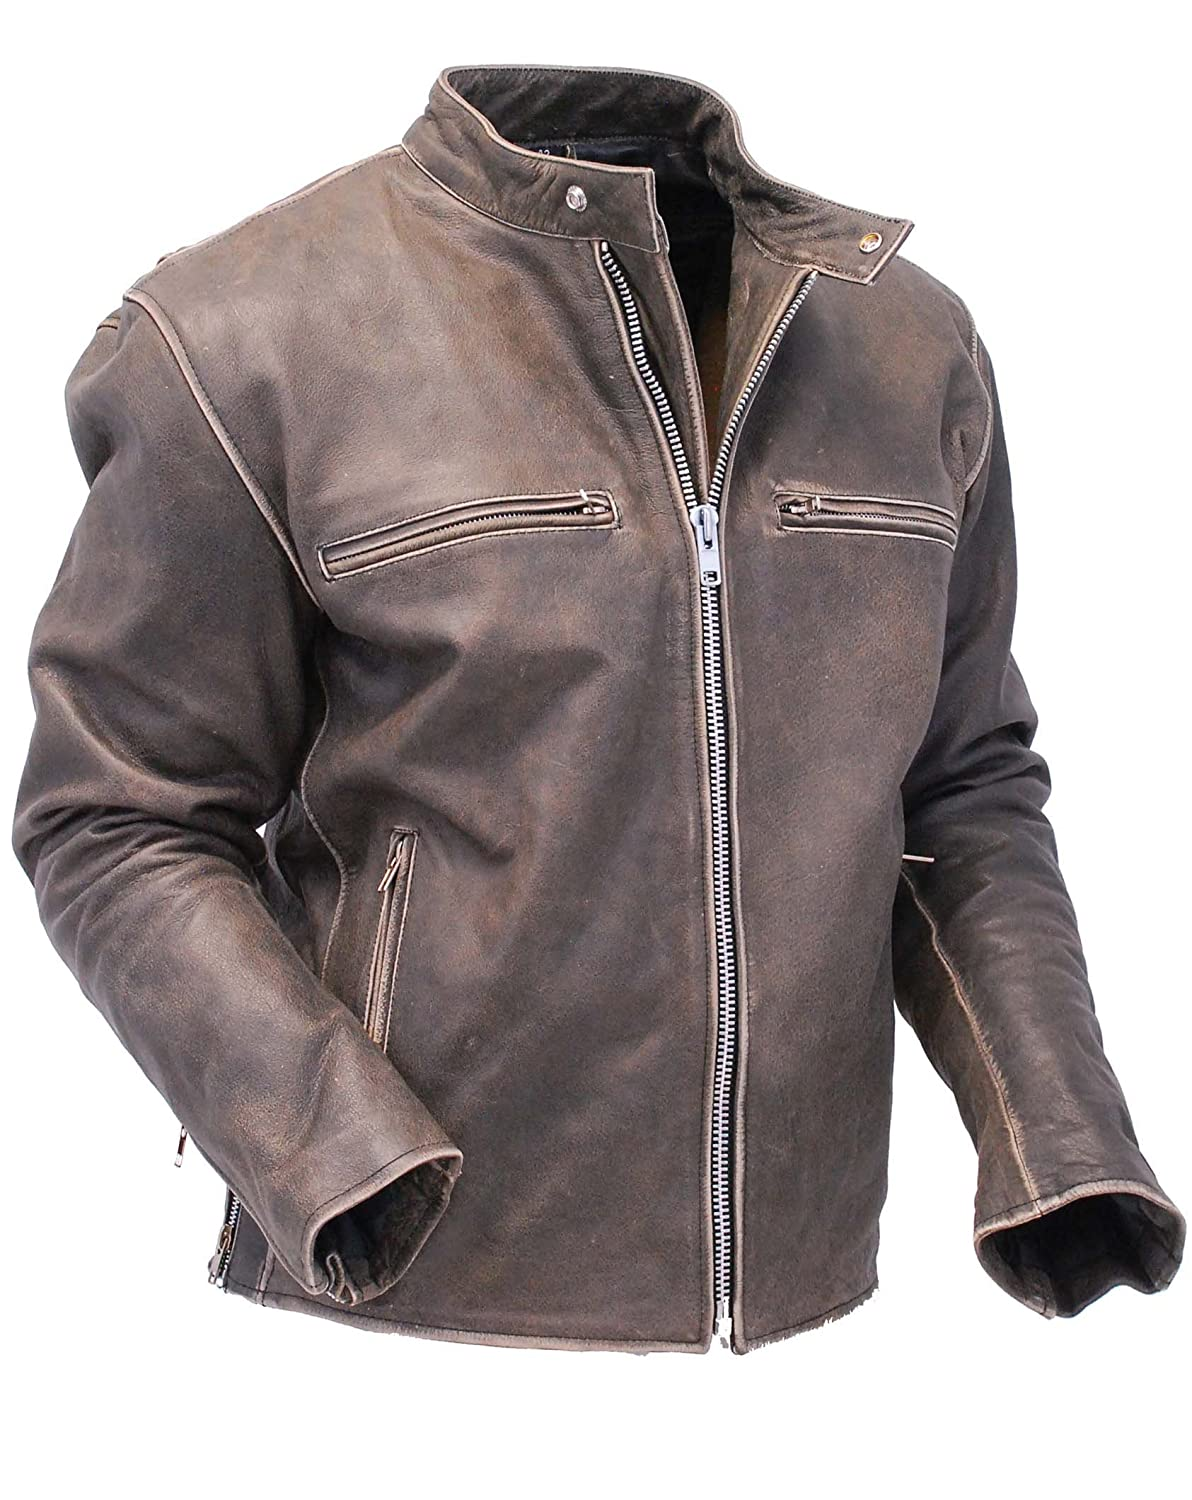 Vintage motorcycle leather jackets girls sail